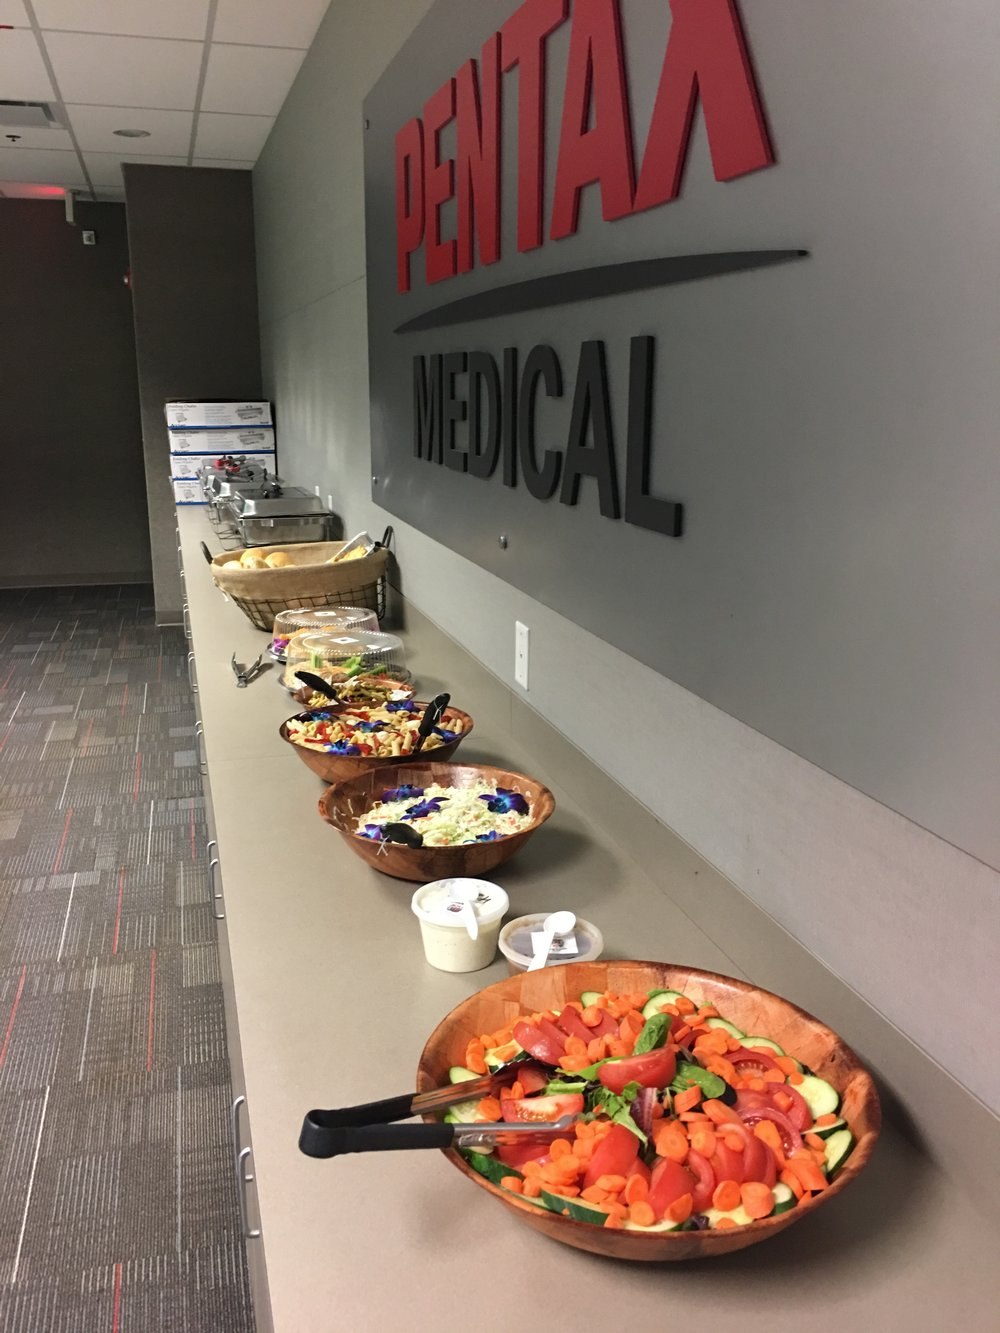 Corporate Catering - Our team is devoted to providing top quality food for doctors offices, meetings and corporate events. Our menu selection ranges from traditional American and Italian cuisine to Asian stir-fry and dumplings. Customized menu options are available for all orders.